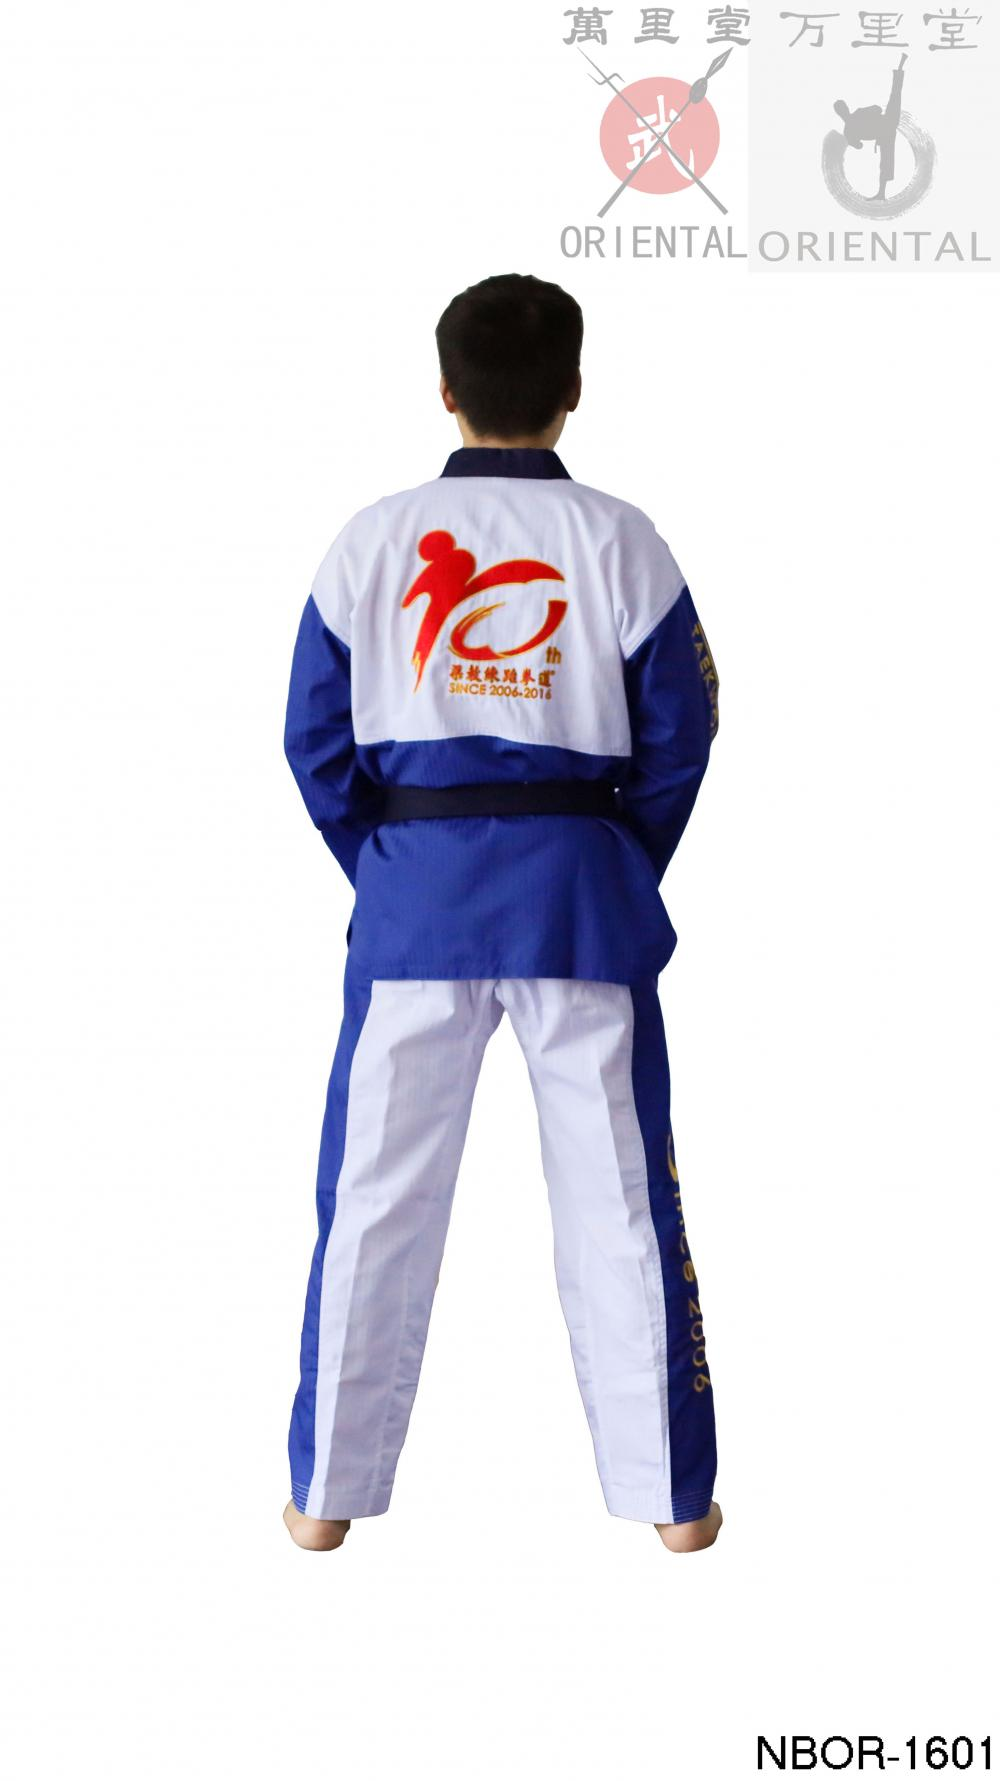 taekwondo training uniform with black belt